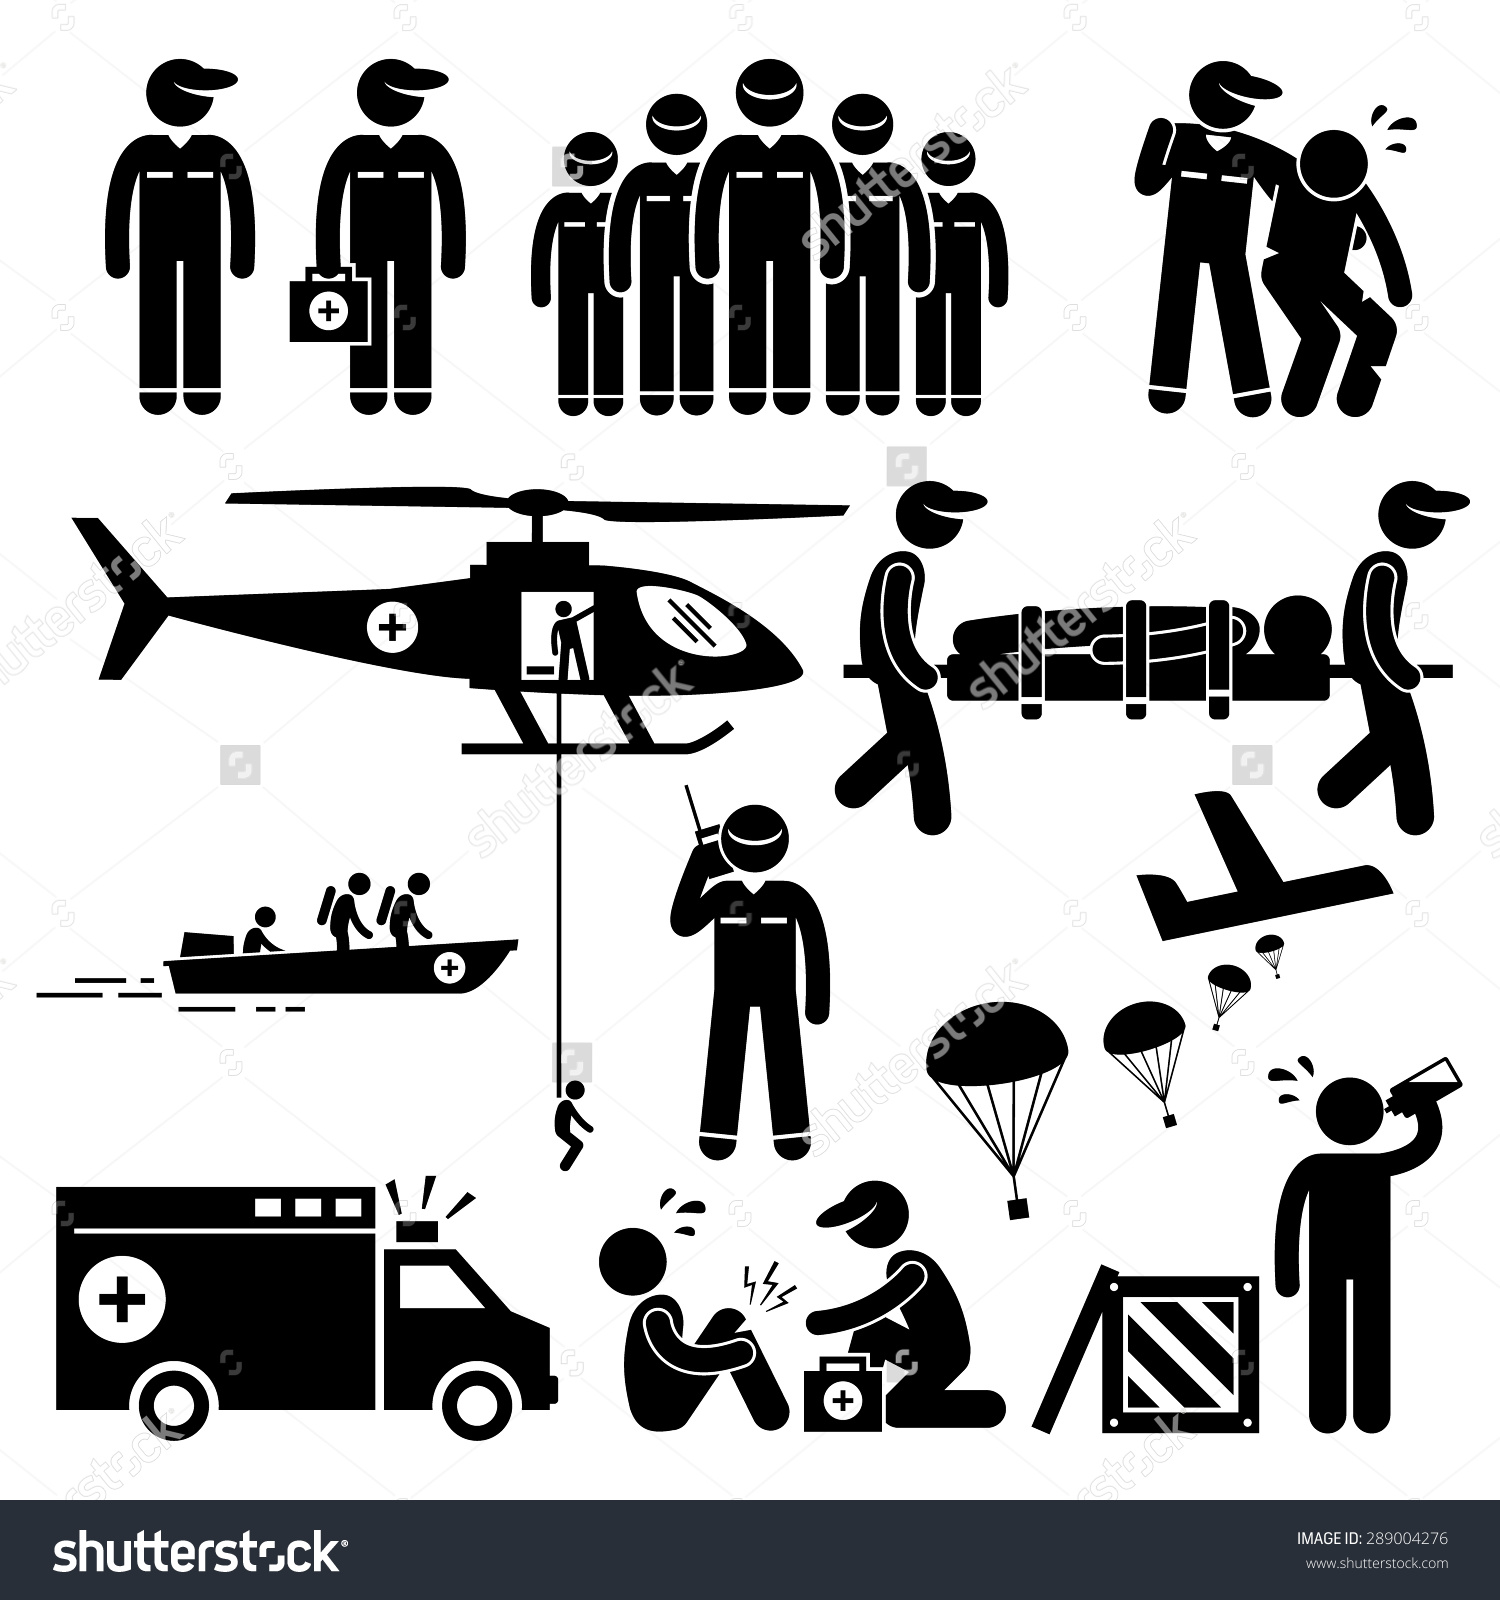 Earthquake clipart. Rescuer pencil and in